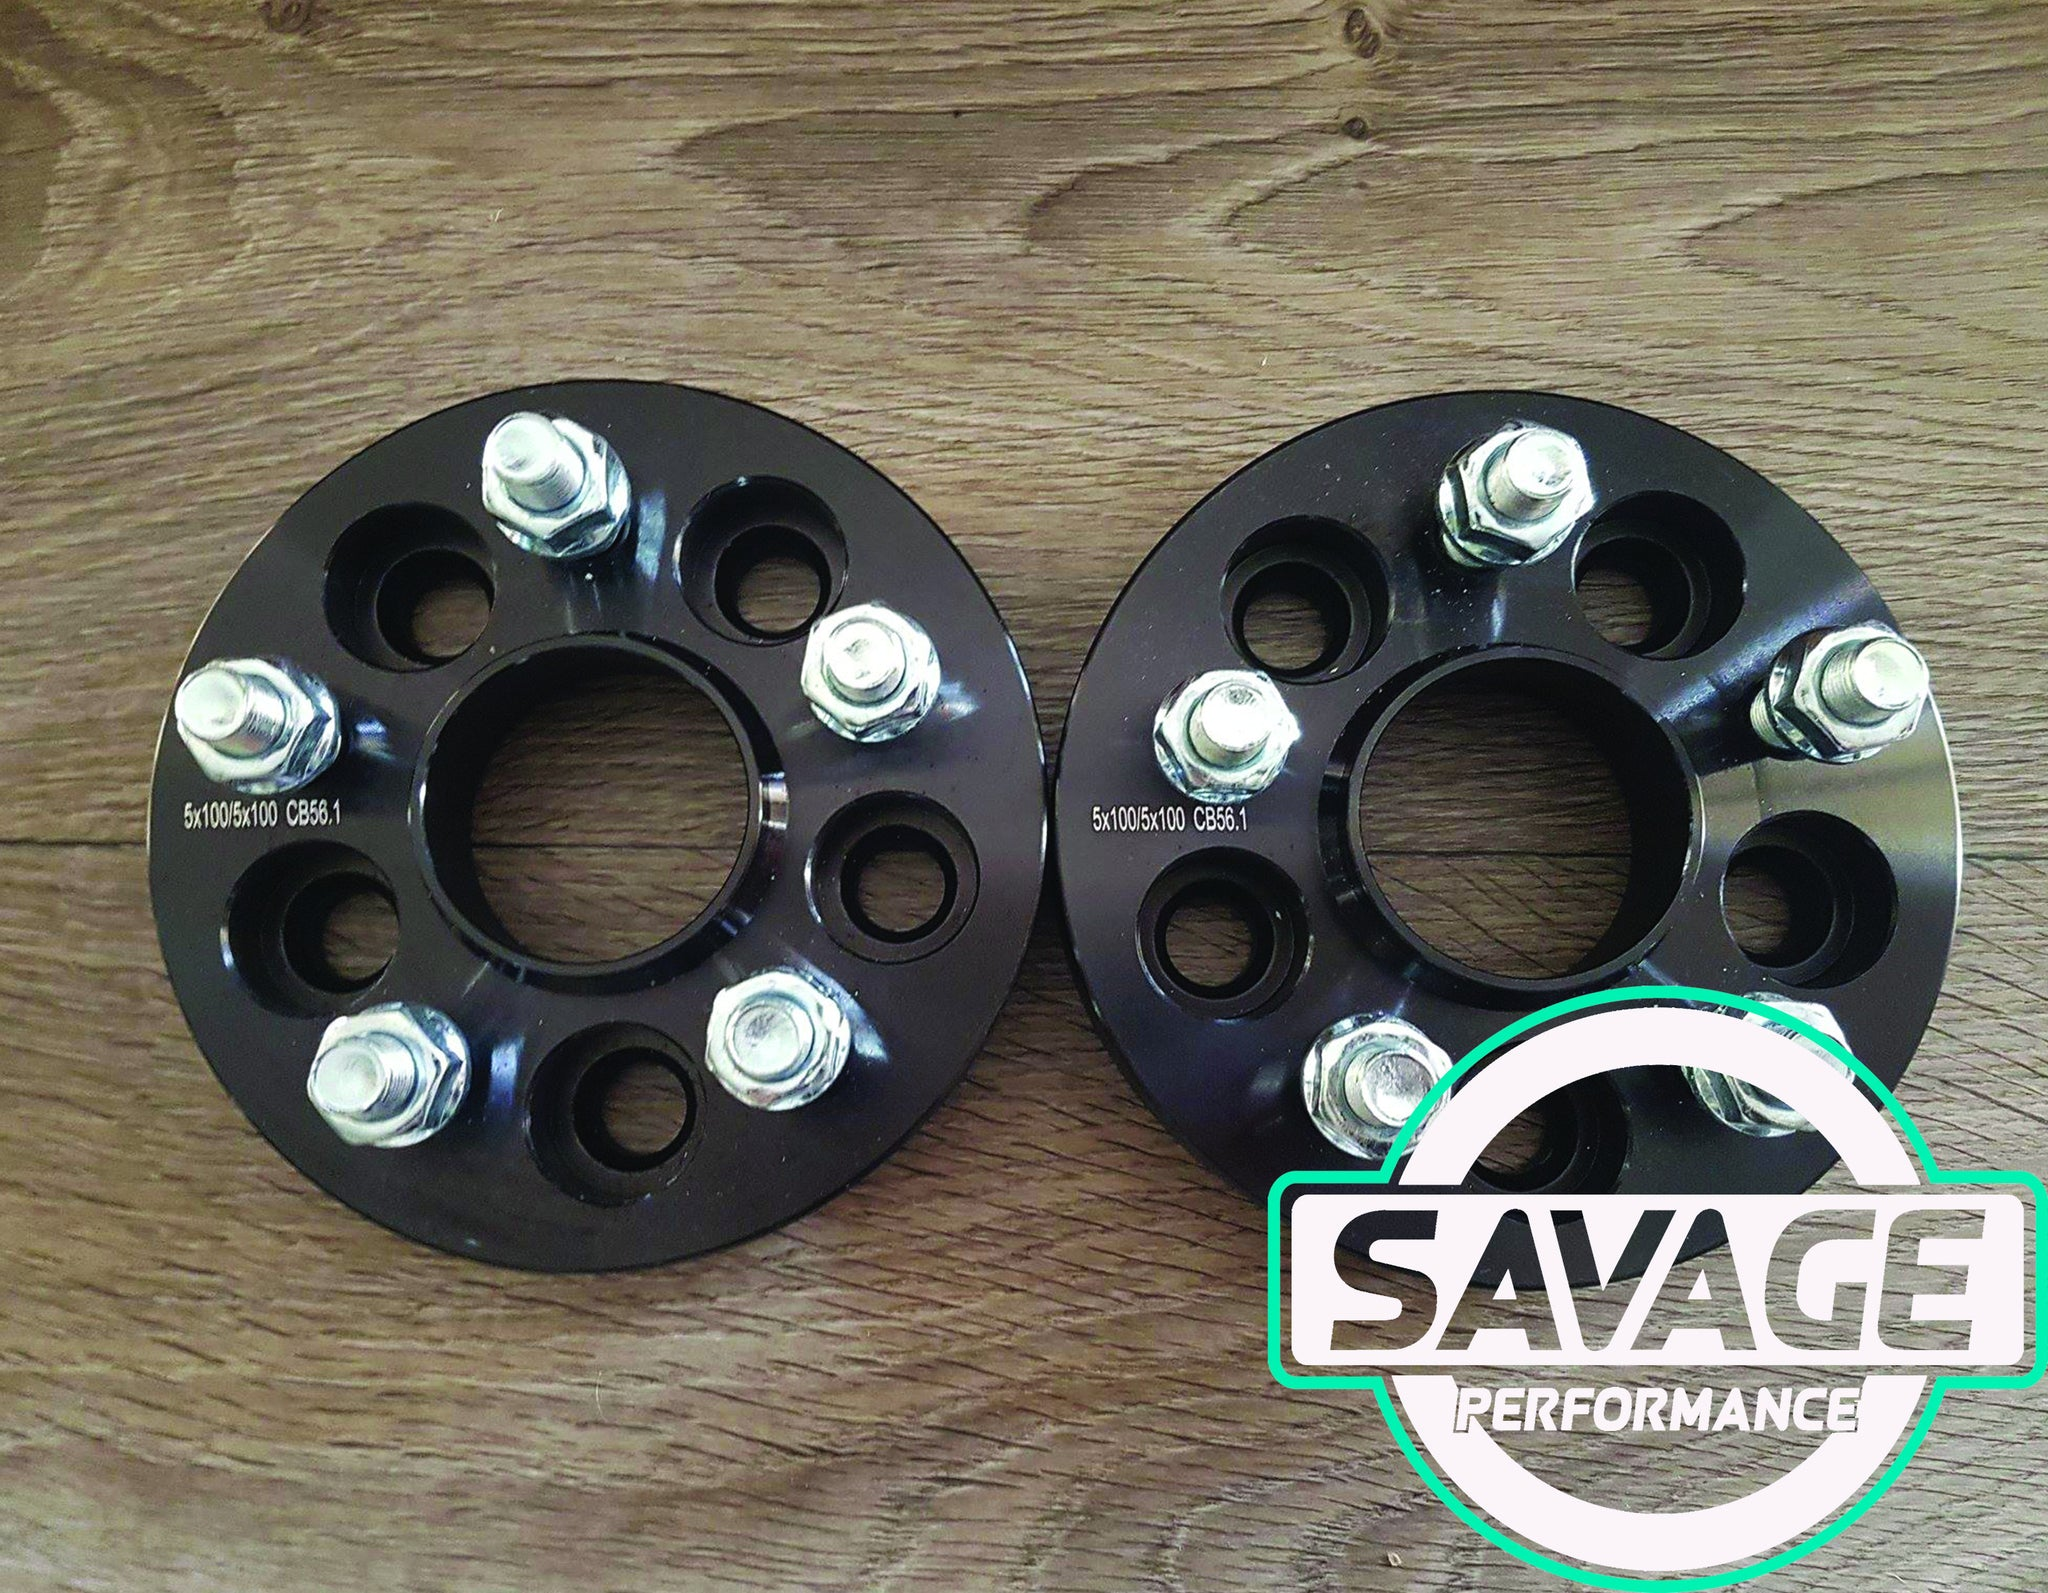 5x100 25mm Wheel Spacers SUBARU *Savage Performance*